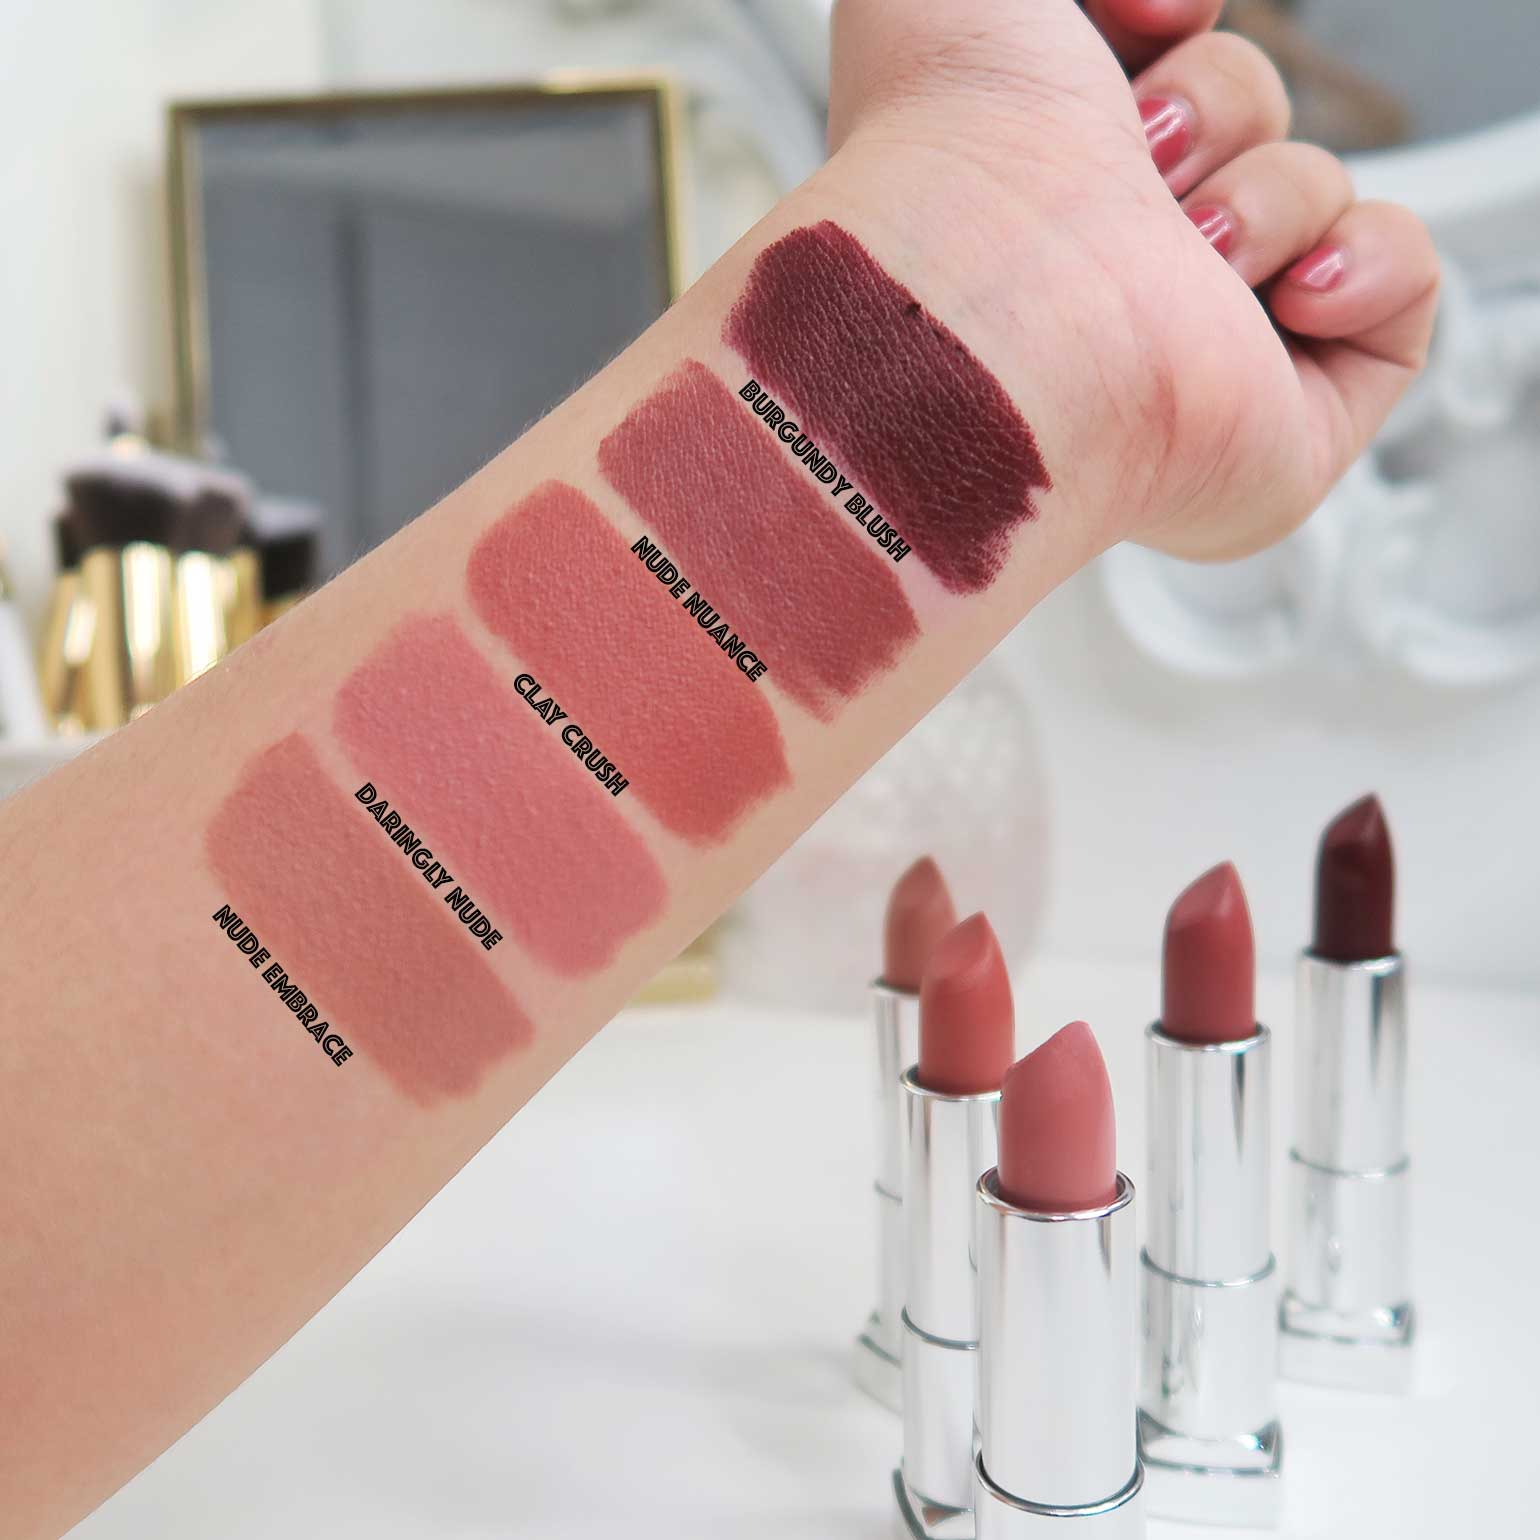 4 Maybelline Creamy Matte Brown Nudes Collection Review Swatches - Gen-zel.com(c)